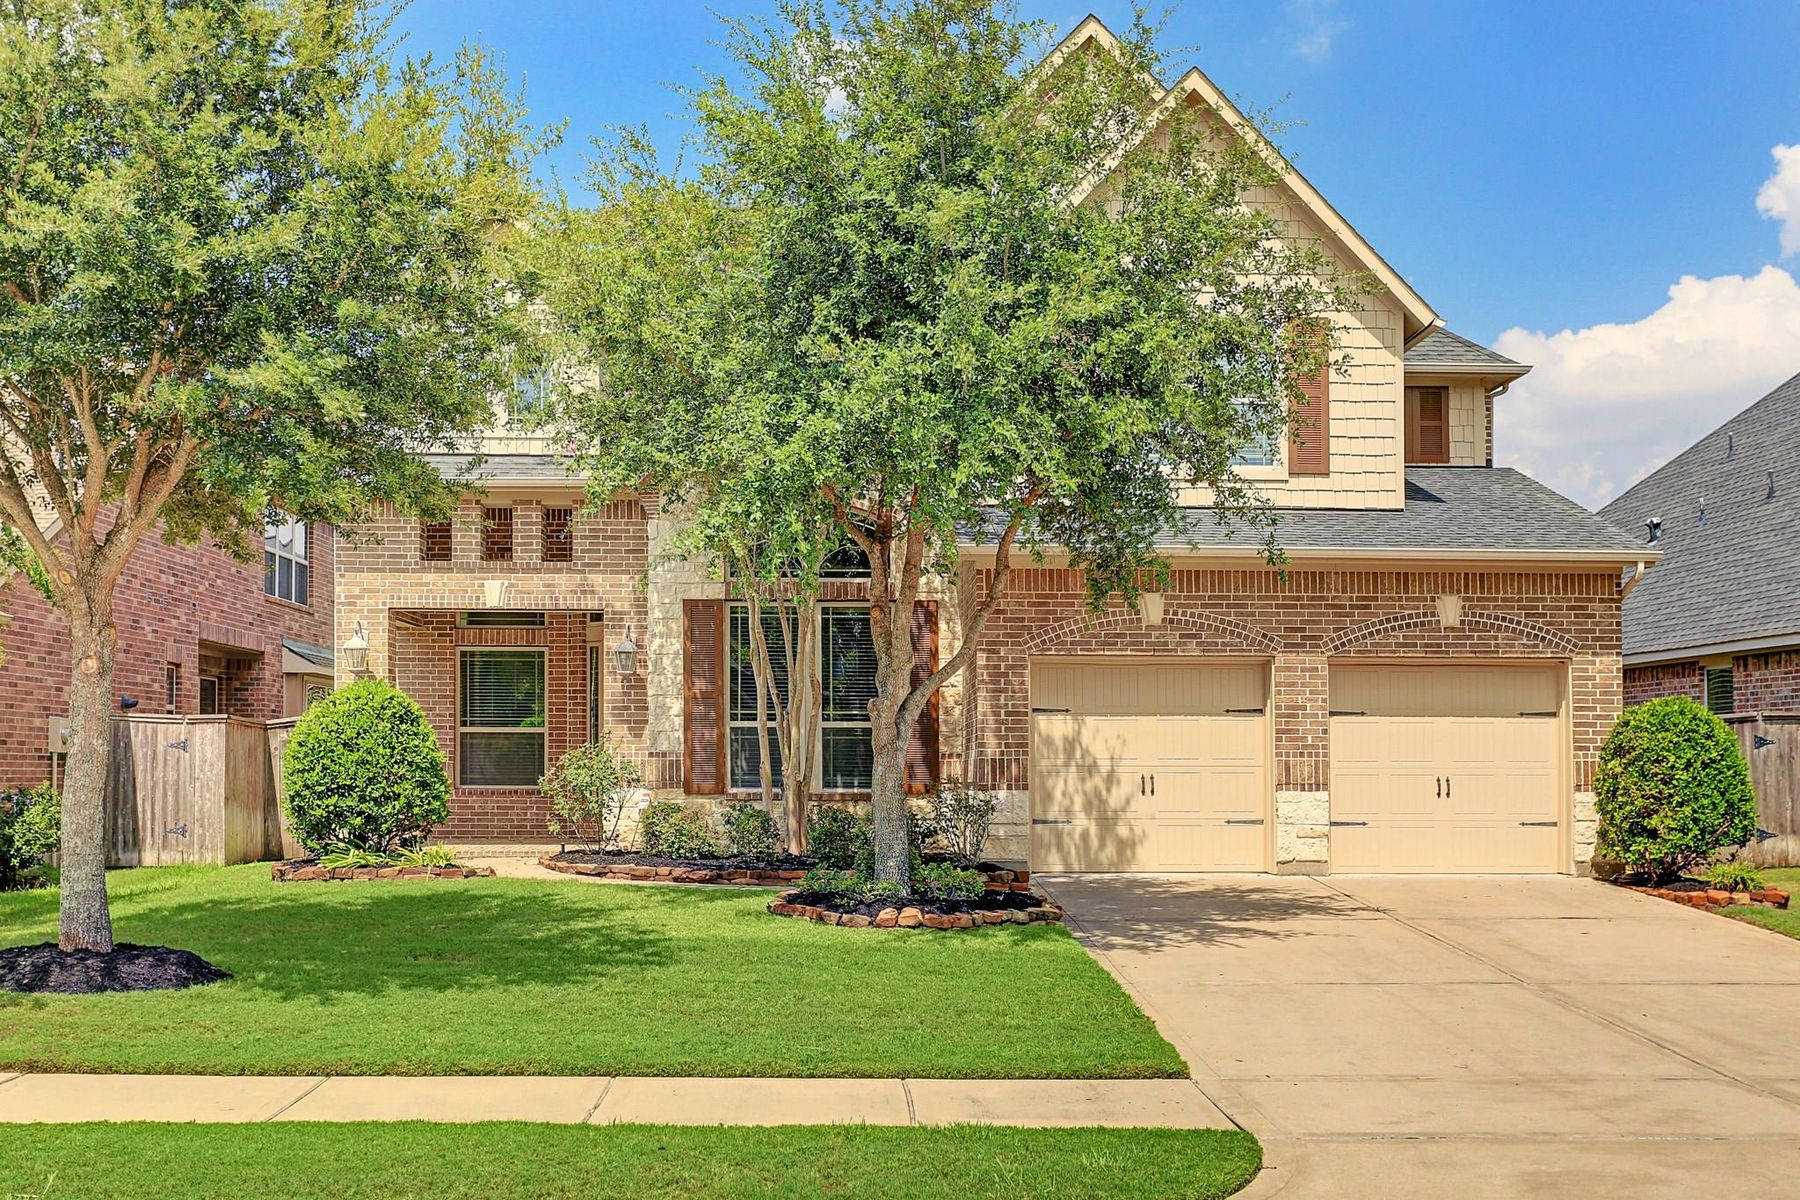 Single Family Homes for Sale at 27618 Dalton Bluff Court Katy, Texas 77494 United States